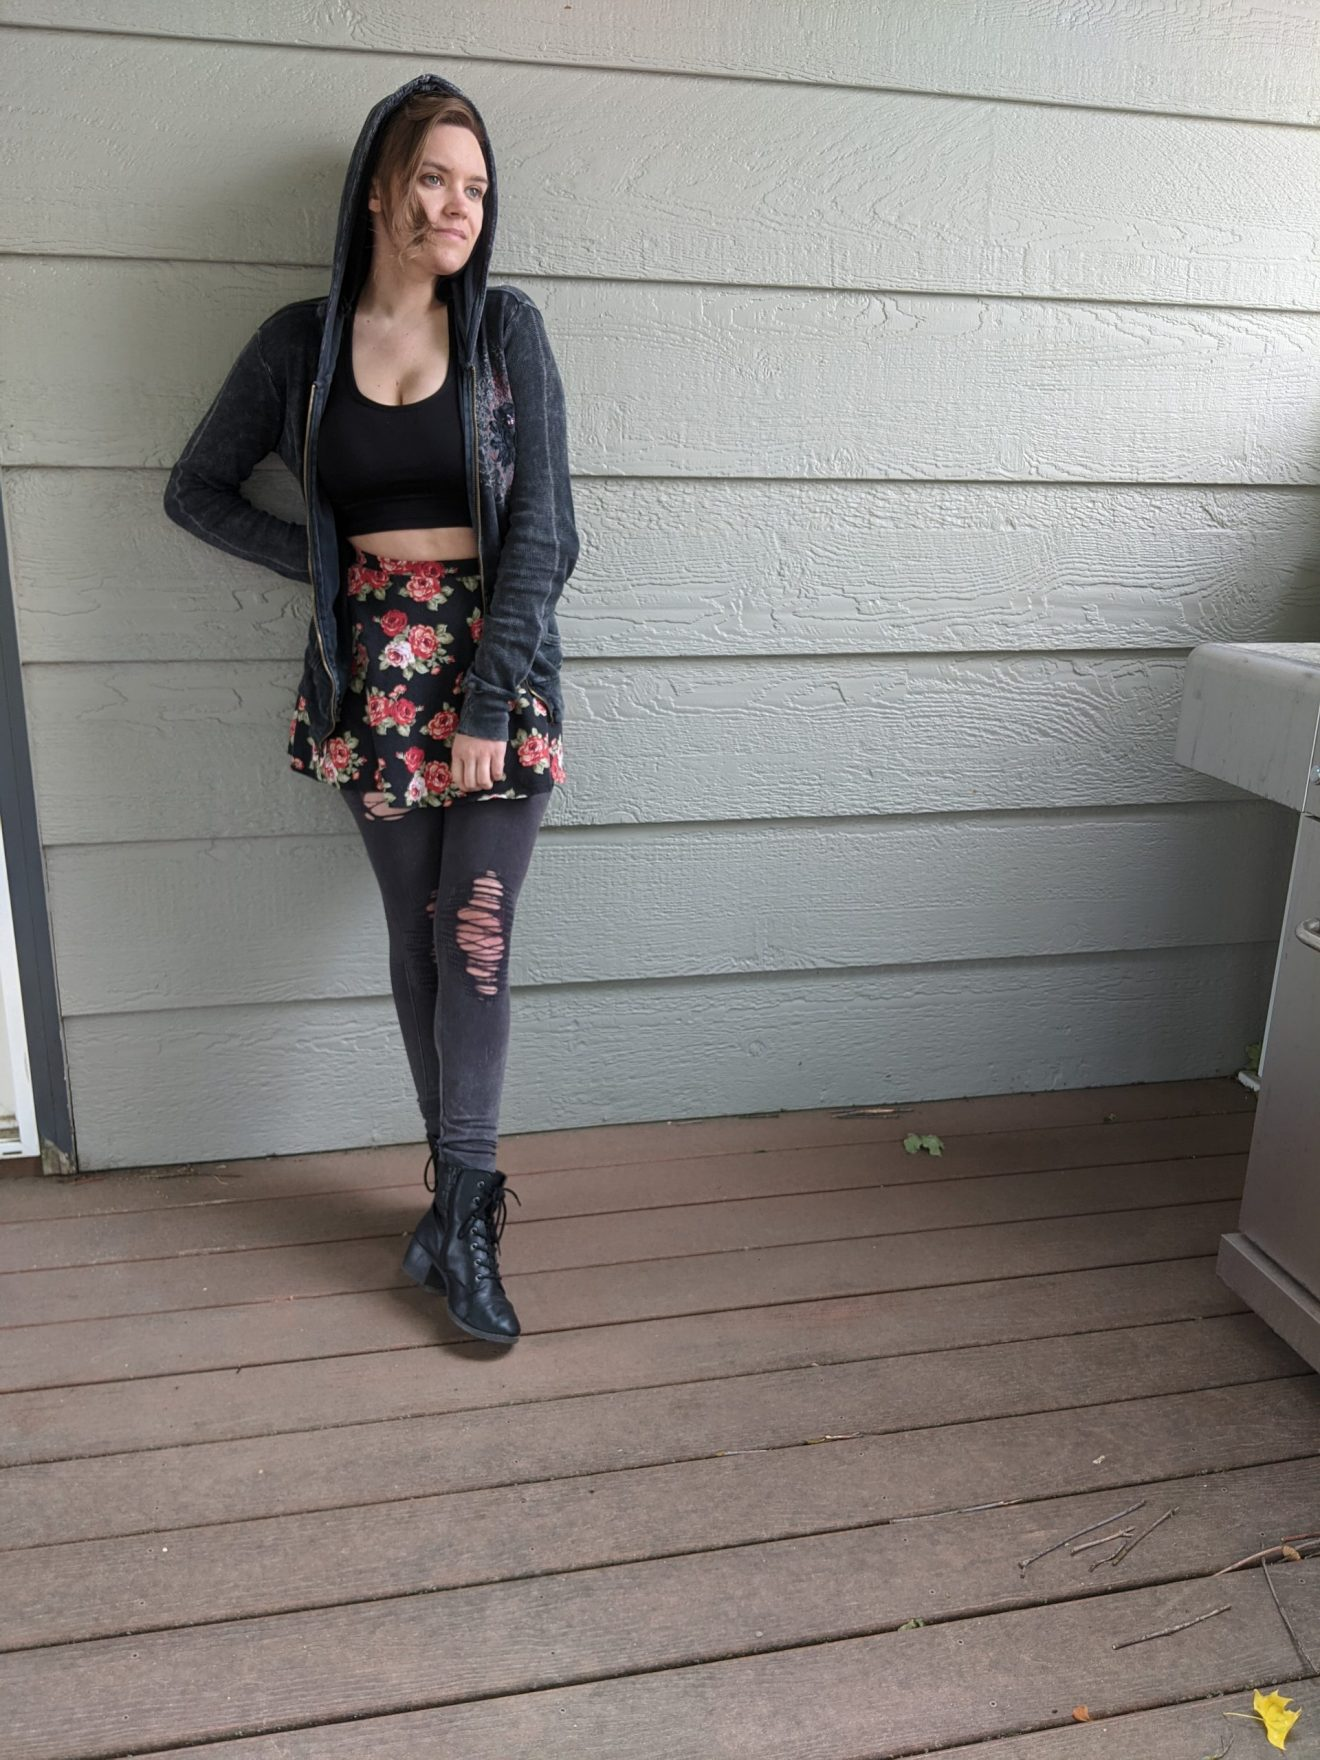 Beautiful Heartache Alissa Ackerman Story Behind The Cloth fashion blog edgy sporty romantic outfit 9 scaled